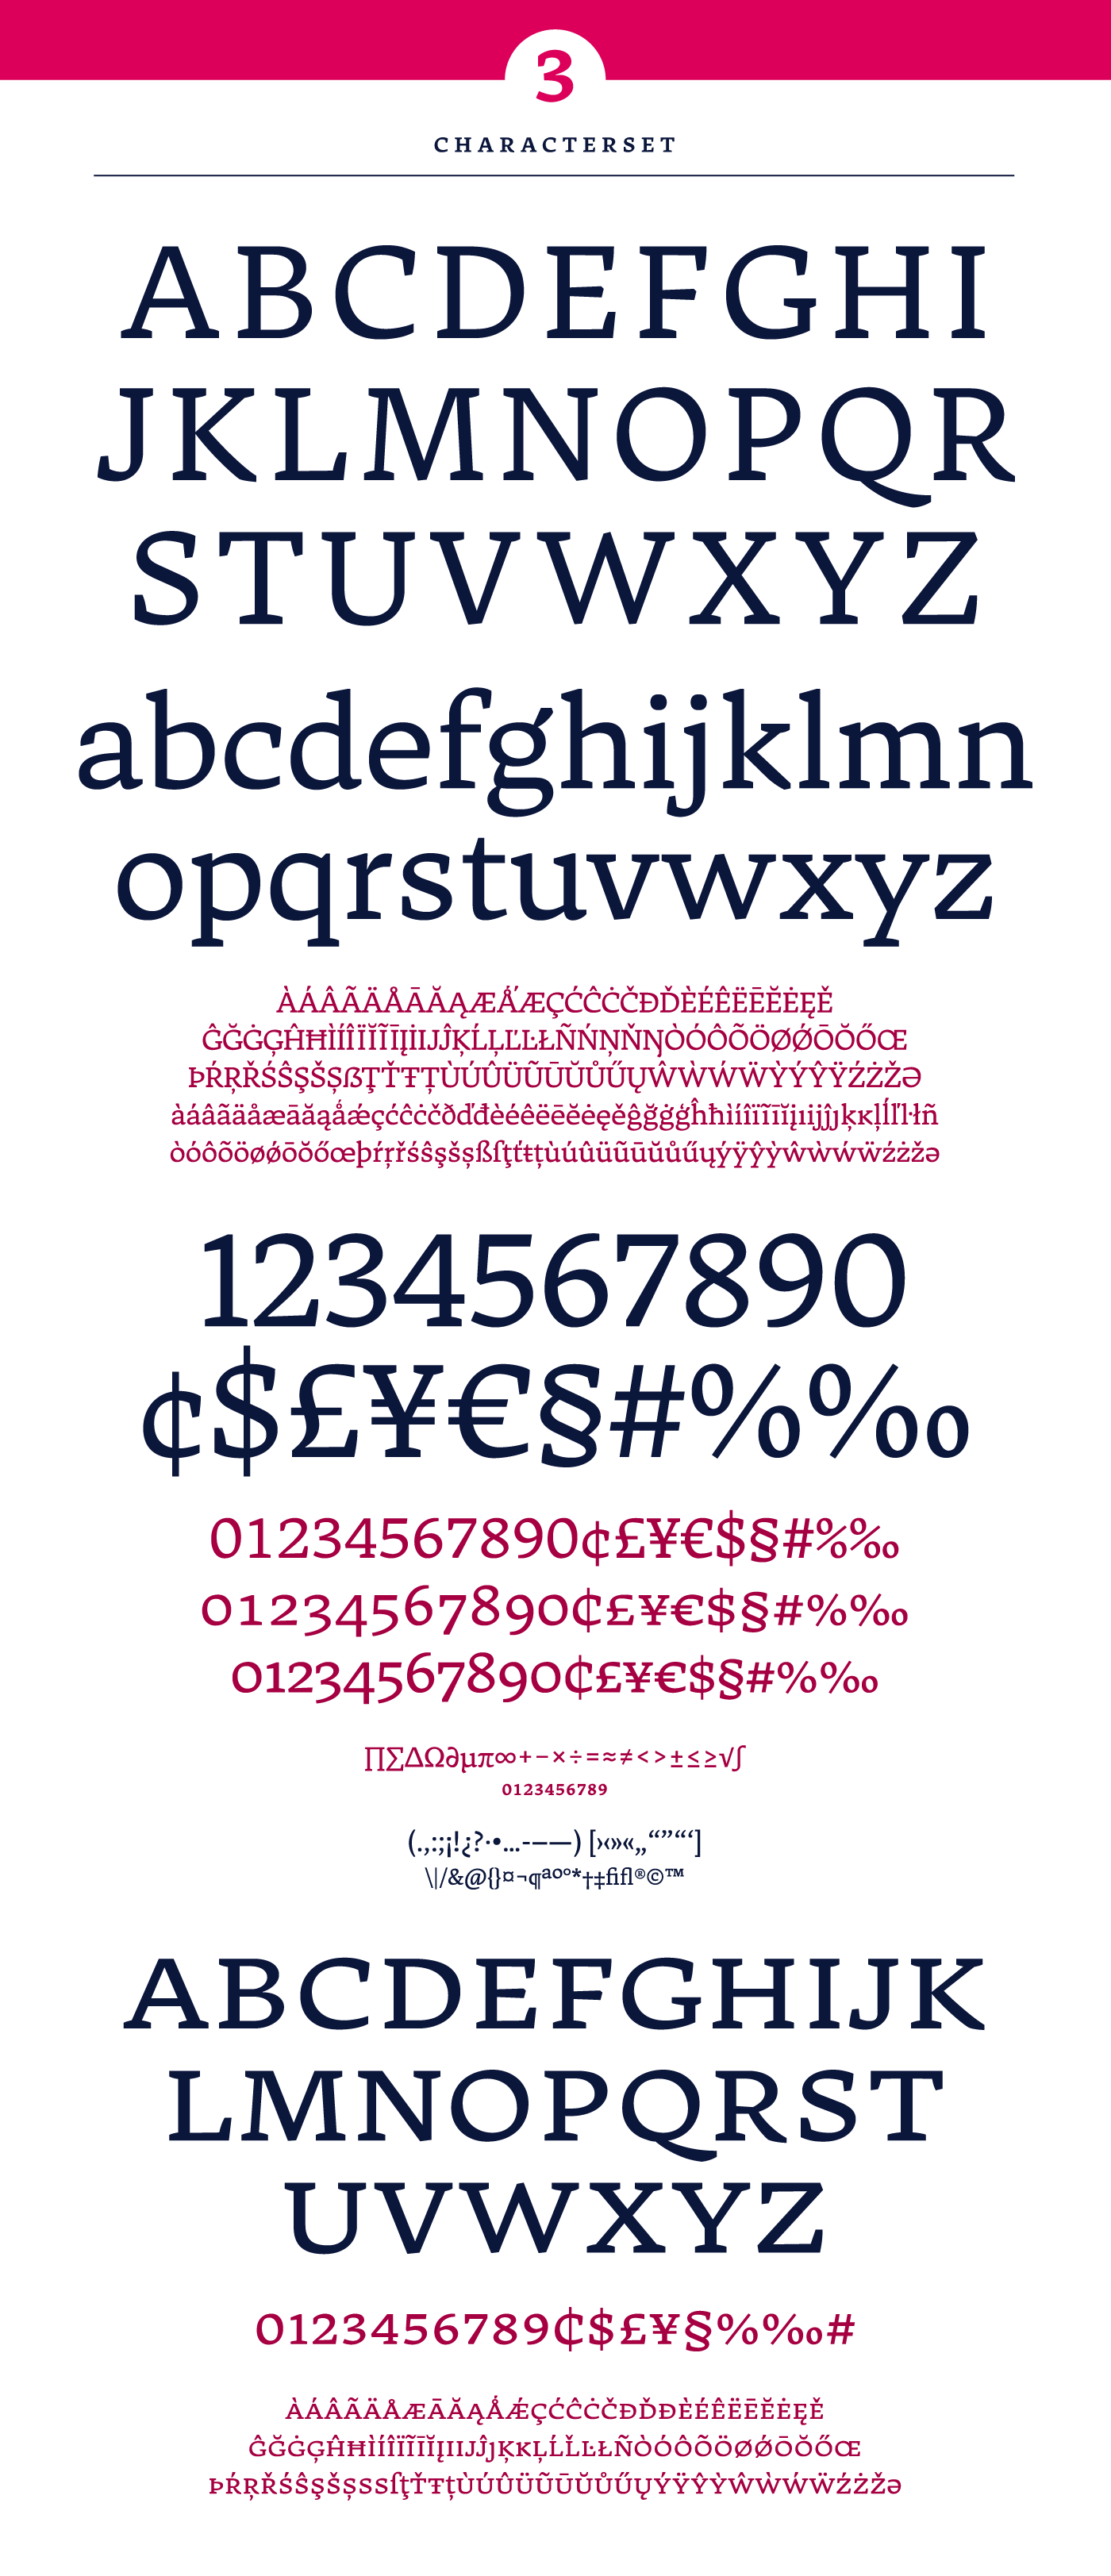 serif crossmedia editorial screen fonts free ebook oldstyle font Typeface